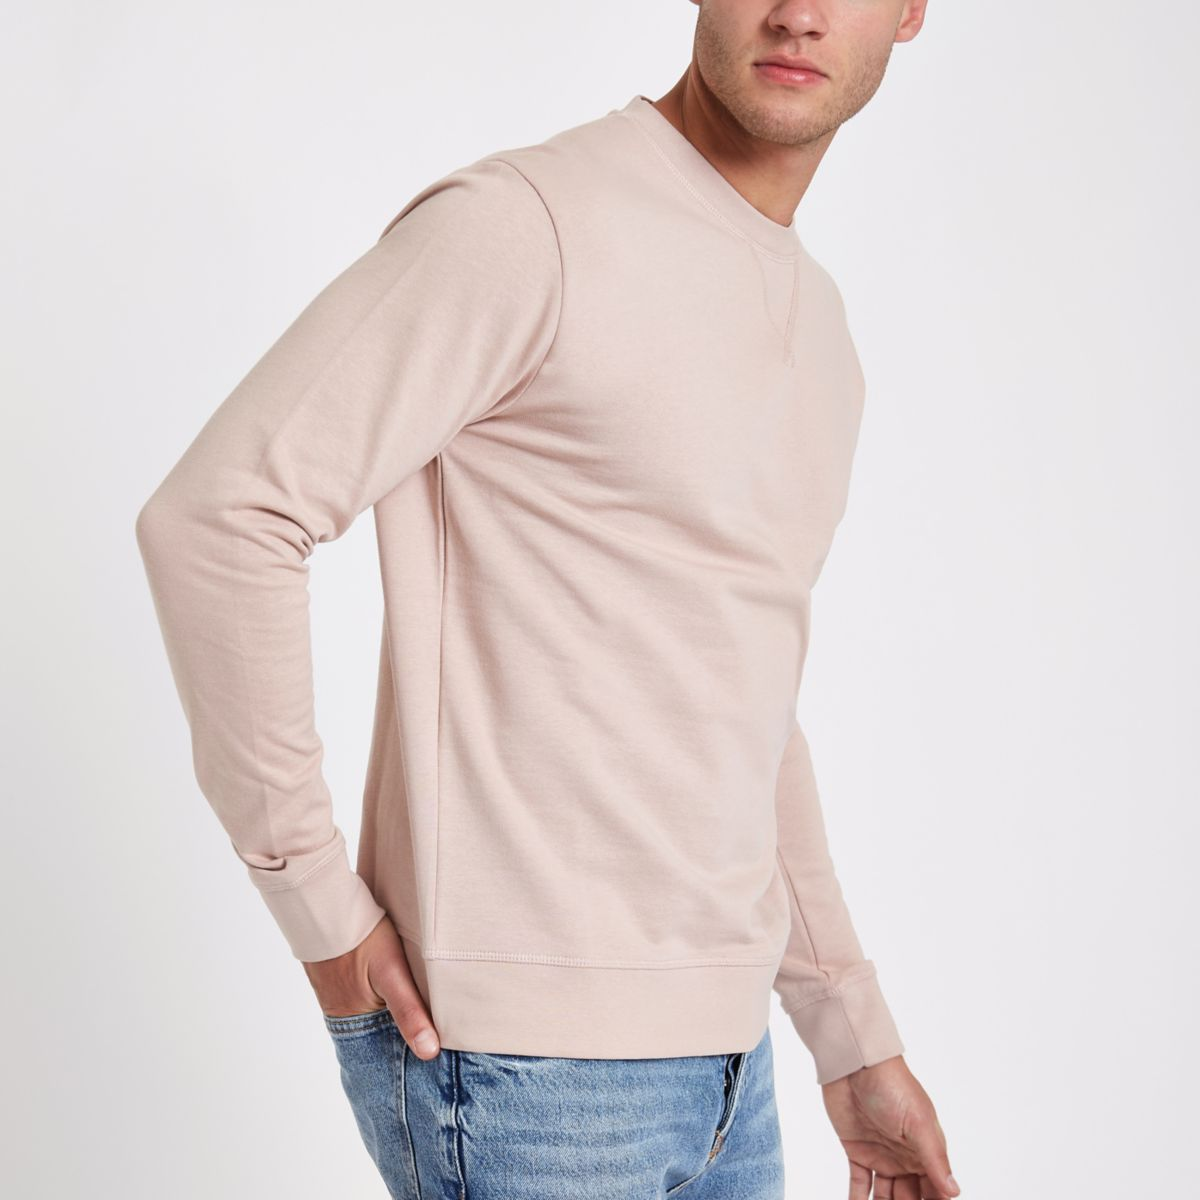 Minimum pink sweater